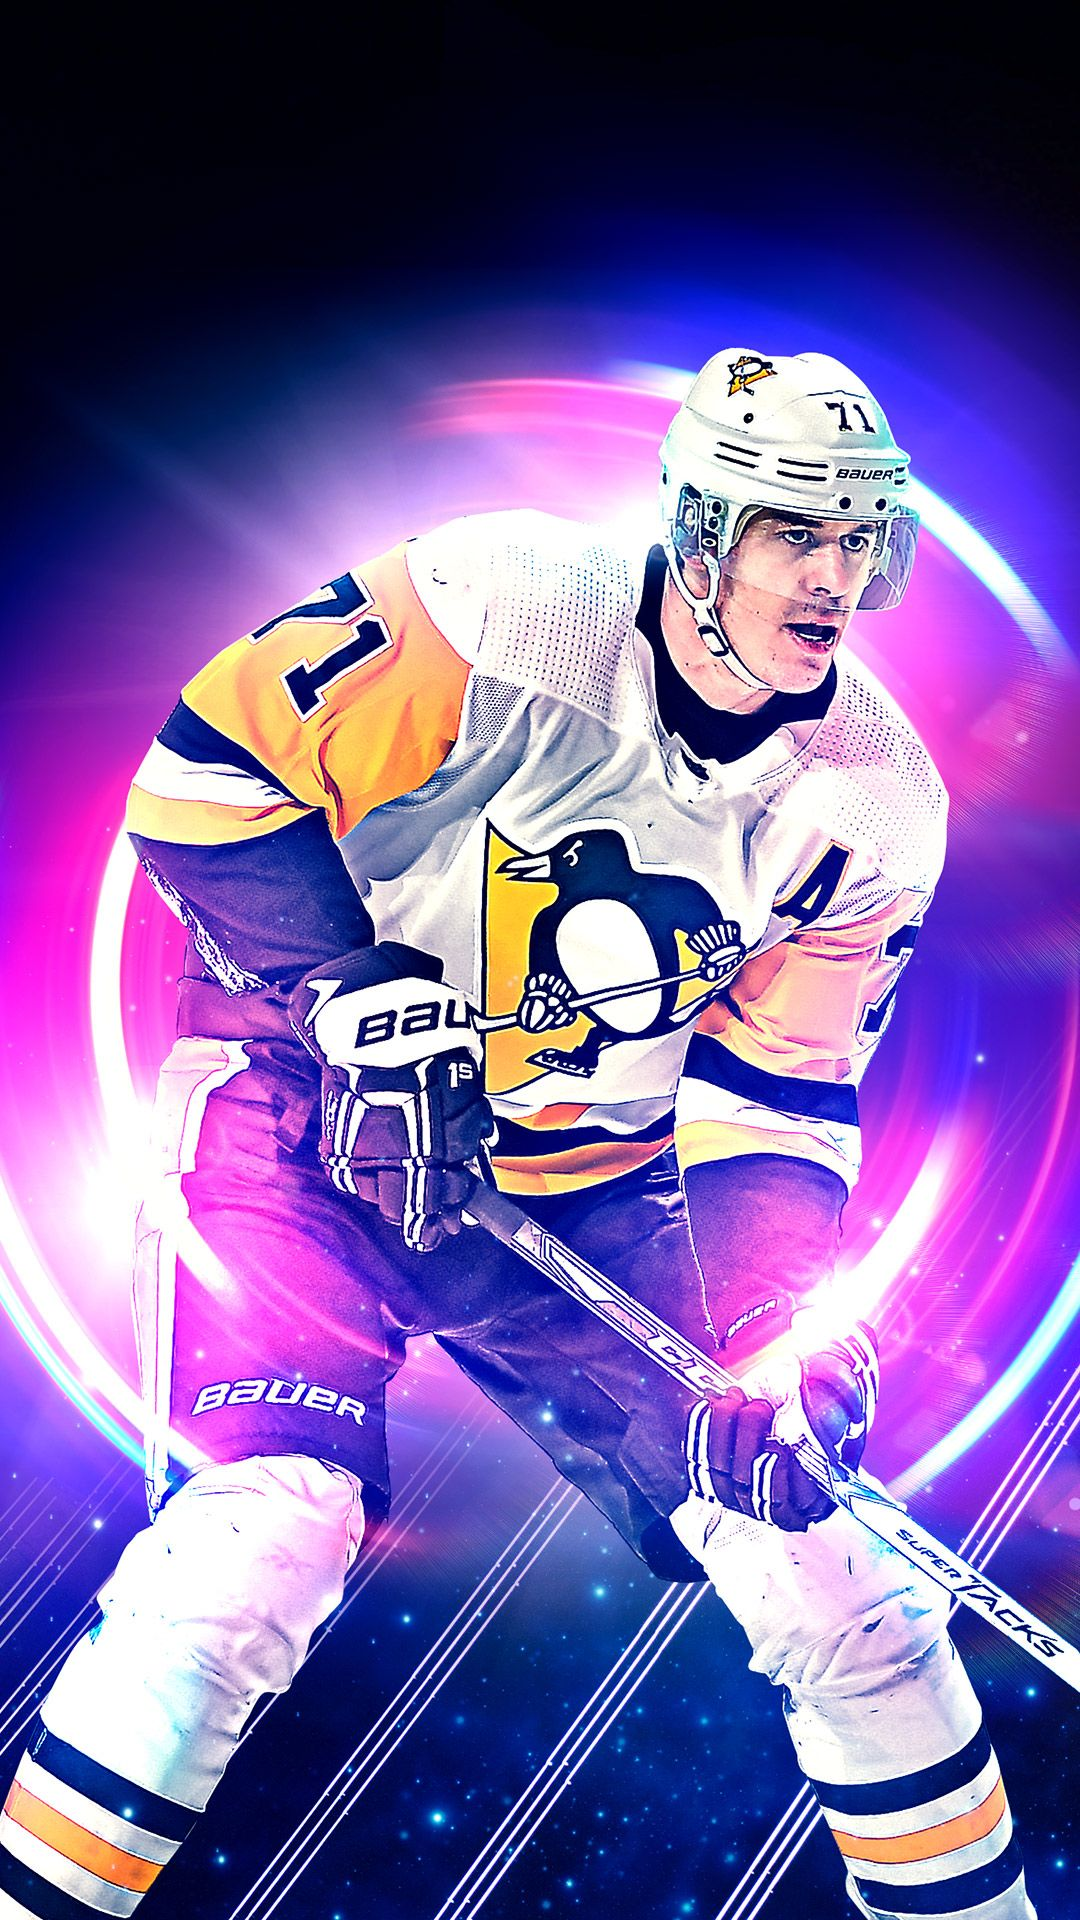 Wallpapers Pittsburgh Penguins In 2020 Pittsburgh Penguins Hockey Penguins Hockey Nhl Penguins